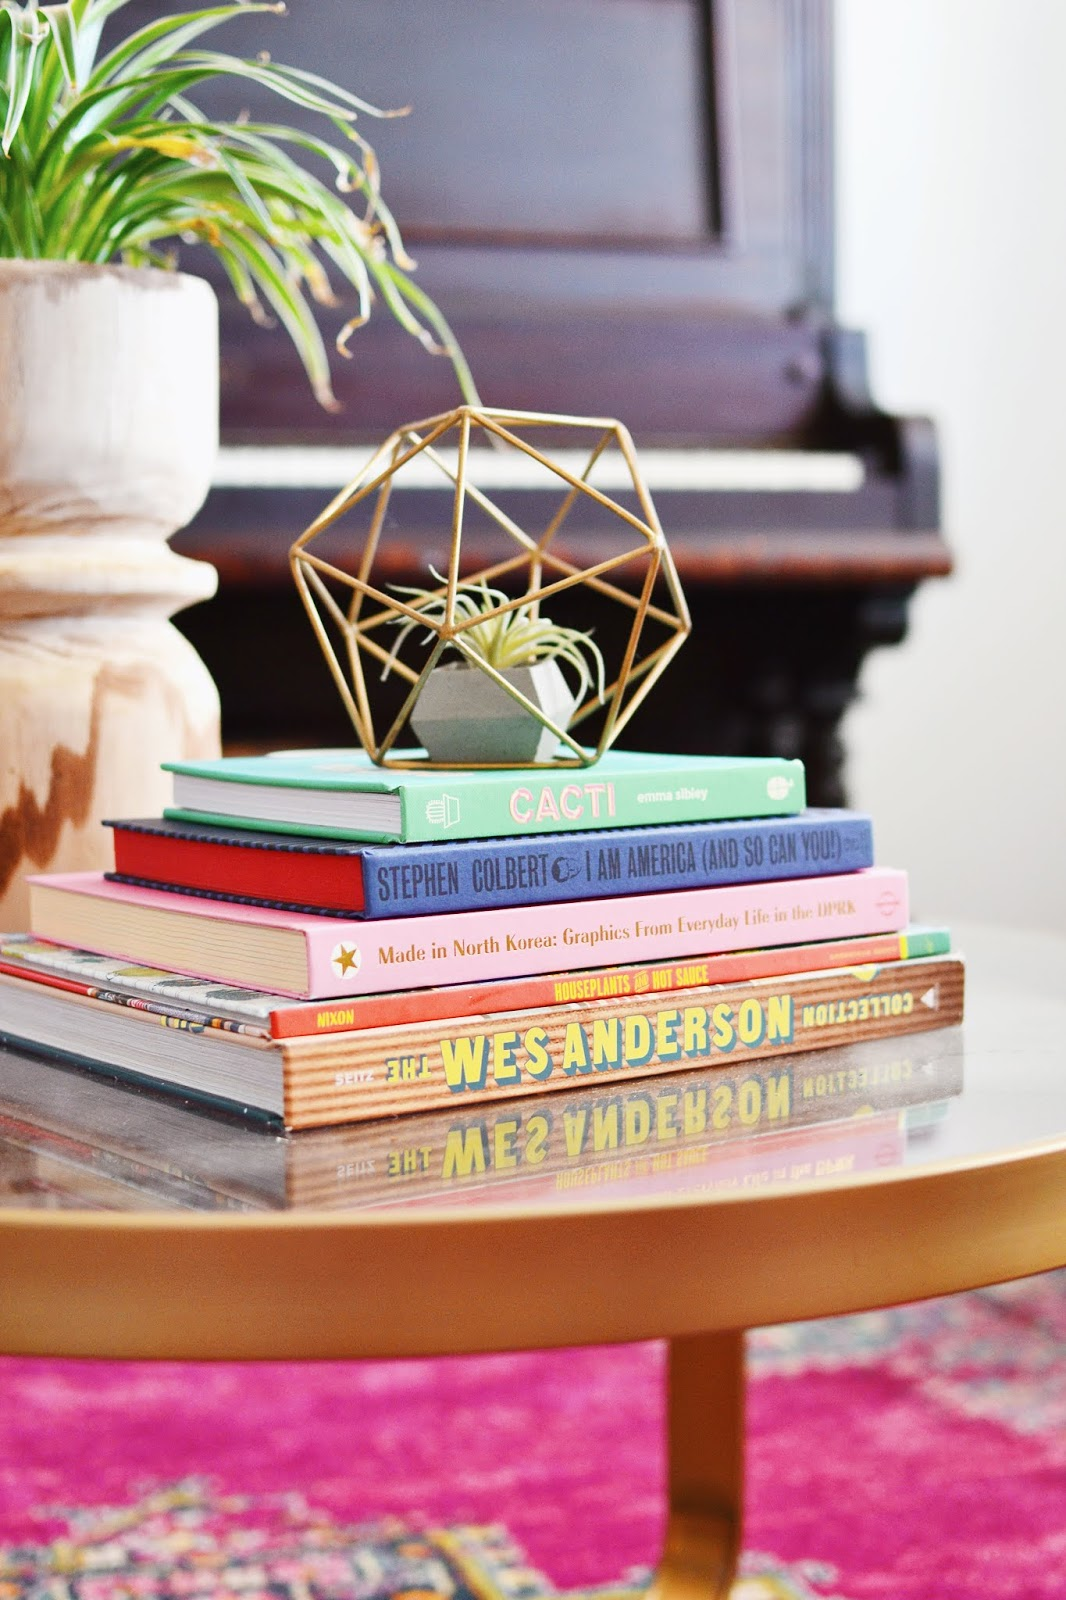 Wes Anderson Coffee Table Book.Julie Ann Events Where To Find Quirky Coffee Table Books